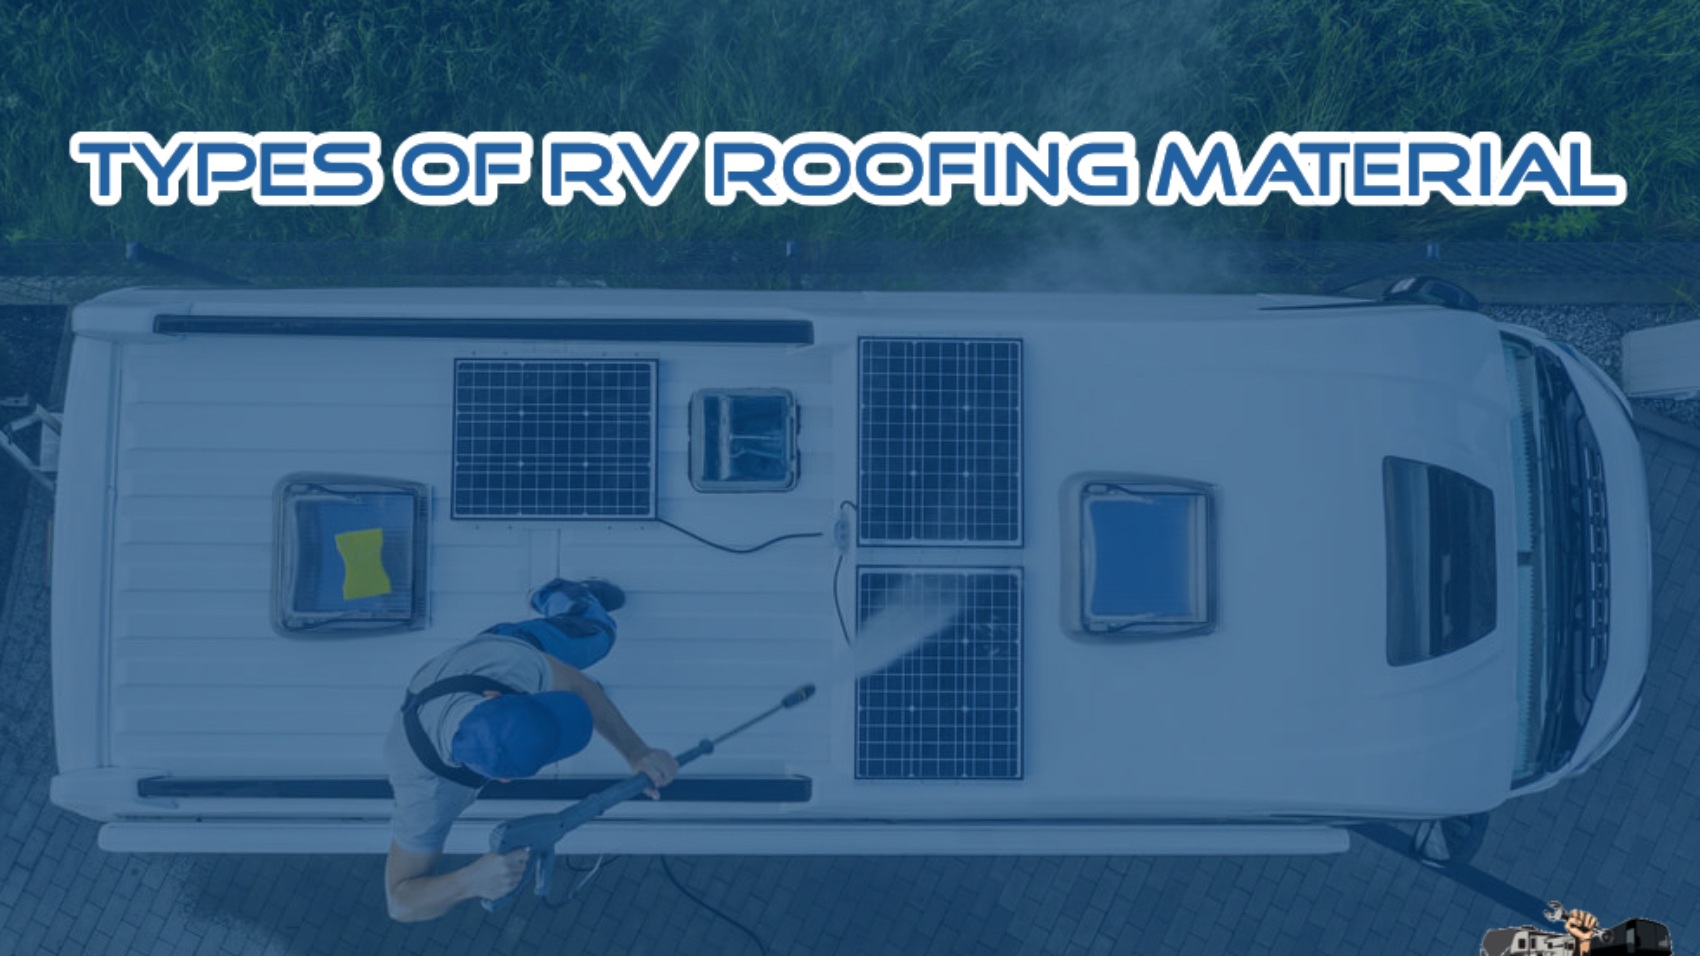 RV Roofing